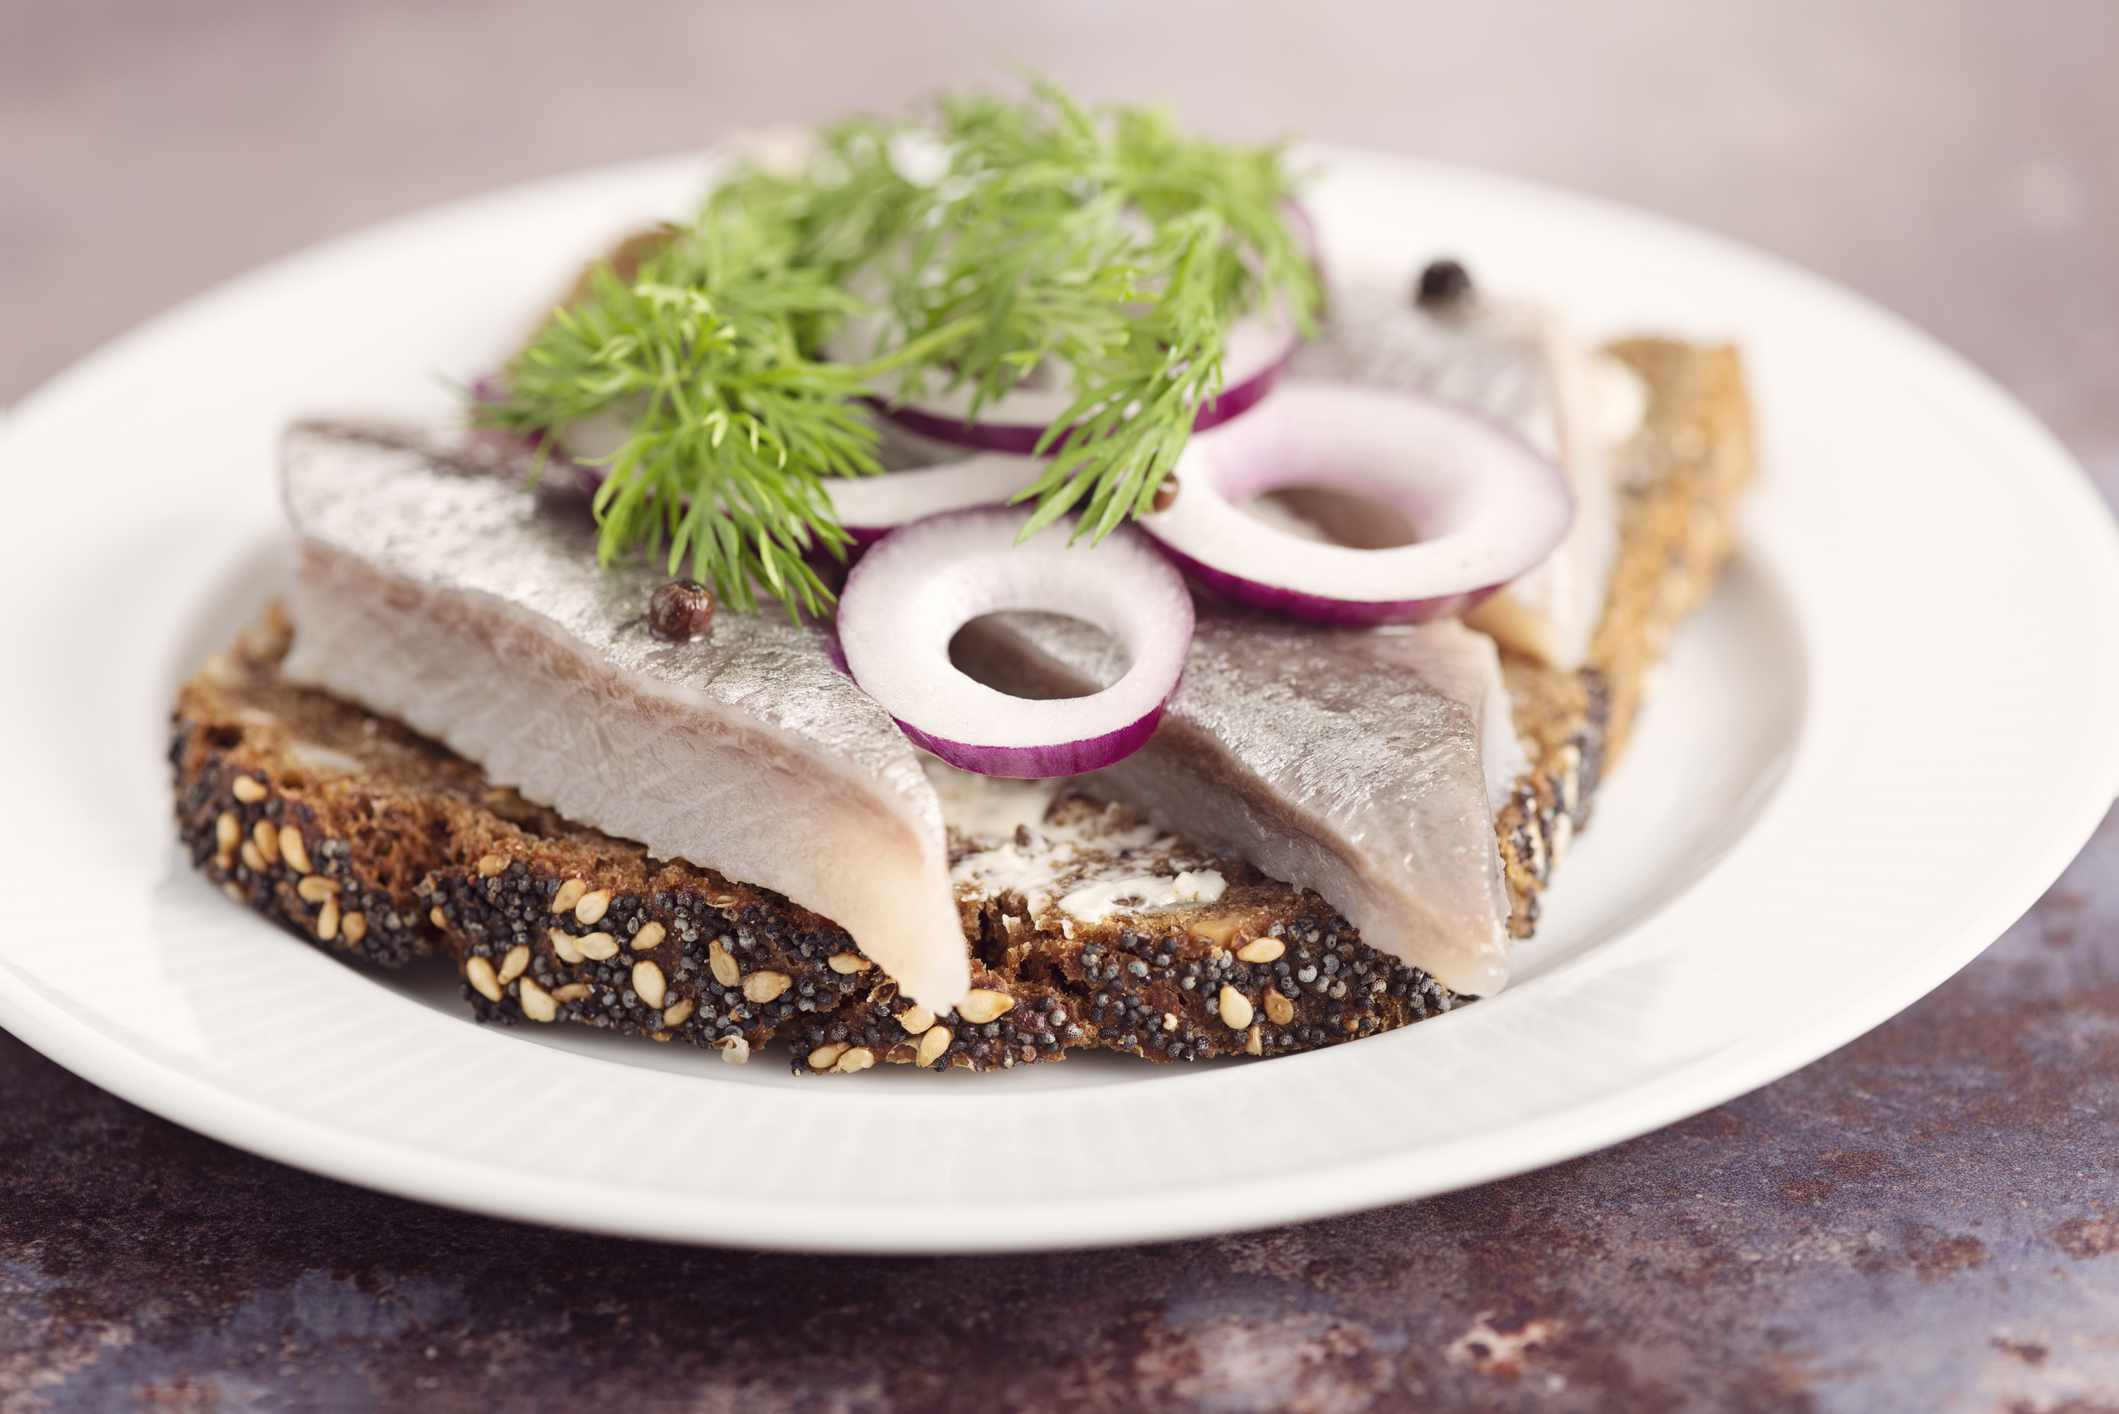 Traditional danish open sandwich made with a slice of buttered rye bread, marinated herring, onion and dill.